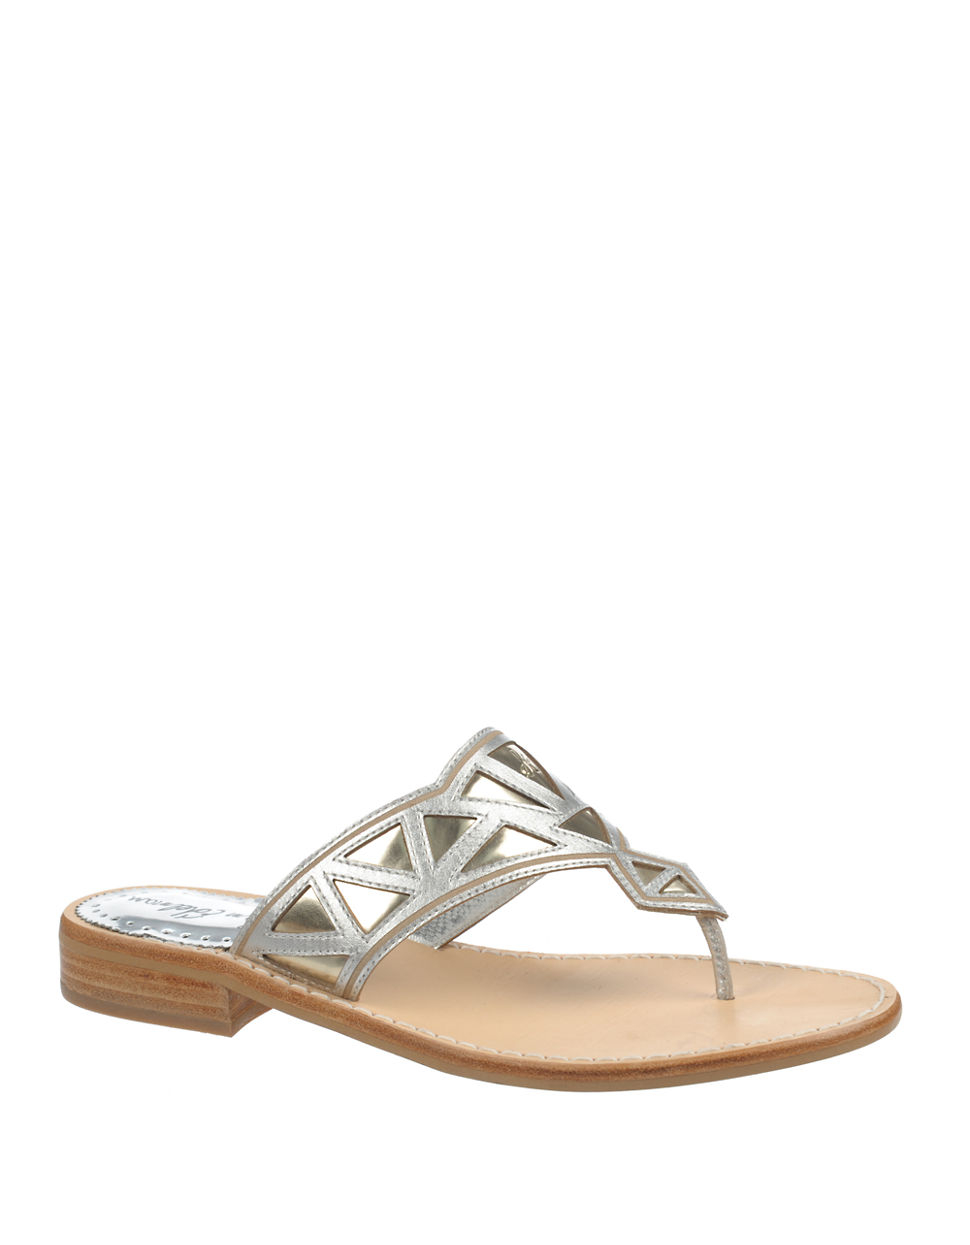 Lyst Sam Edelman Treva Two Tone Leather Thong Sandals In